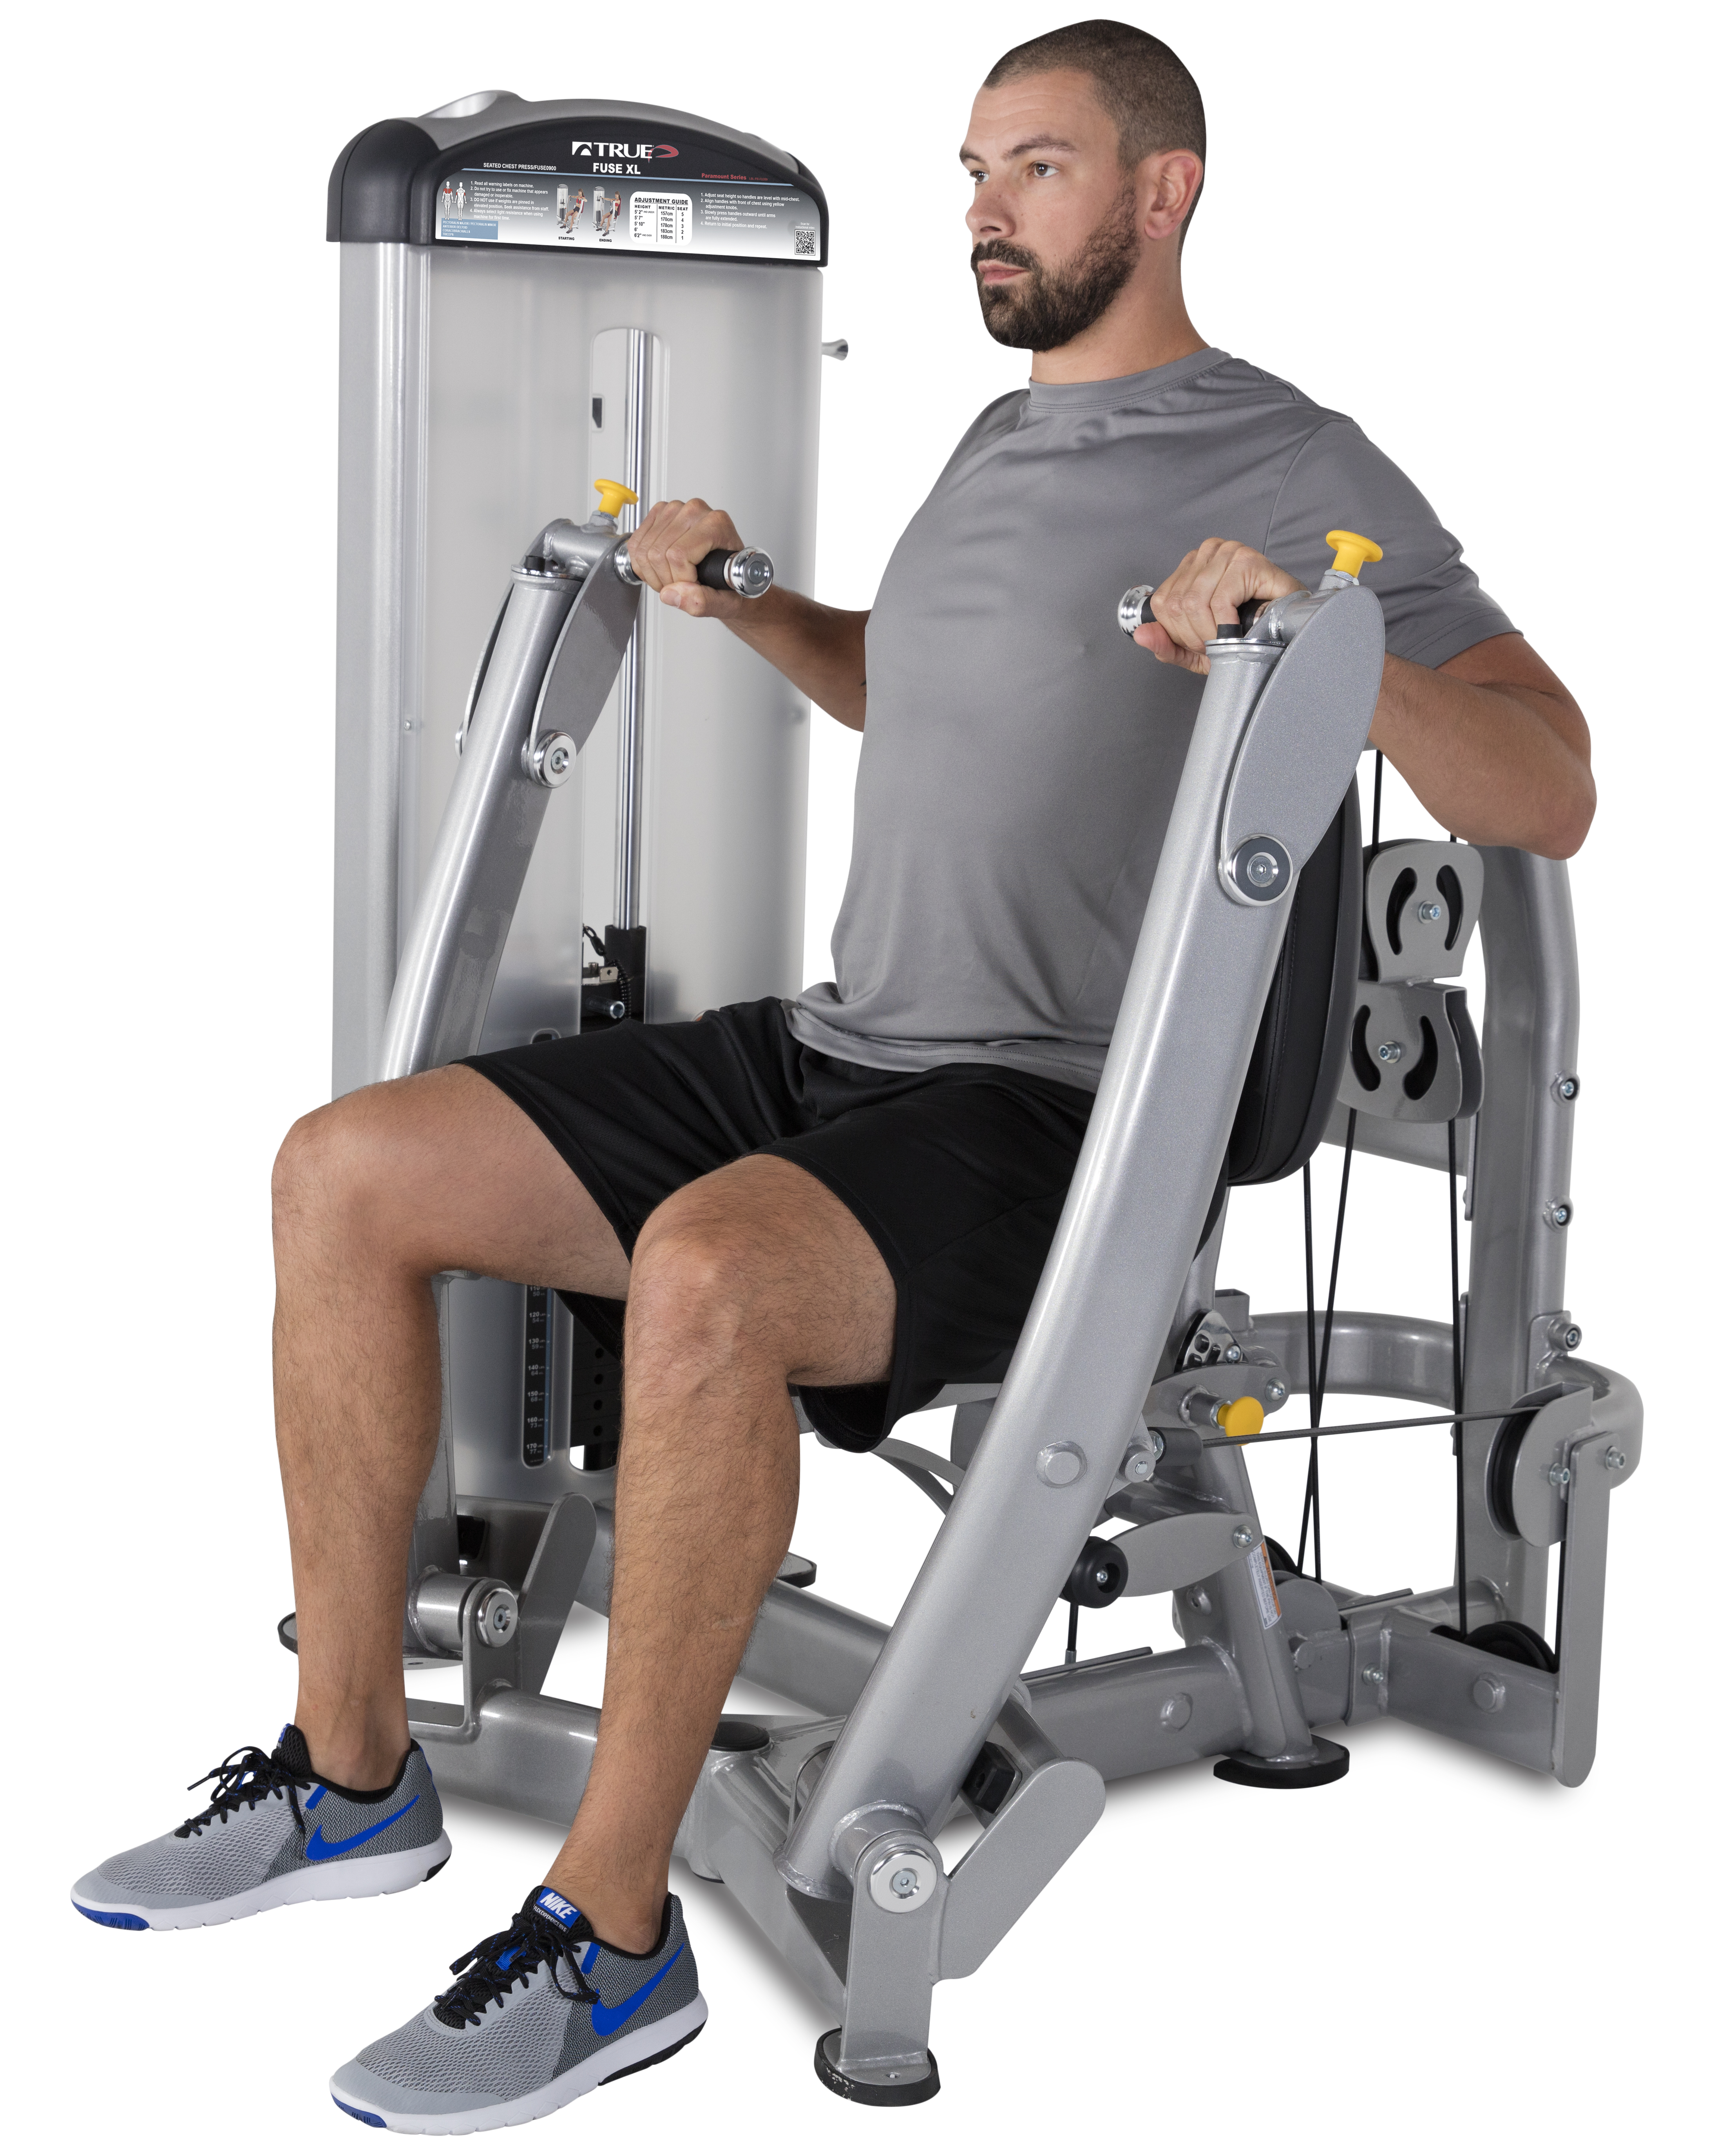 Paramount Fuse Xl 0900 Chest Press Tower Fitness